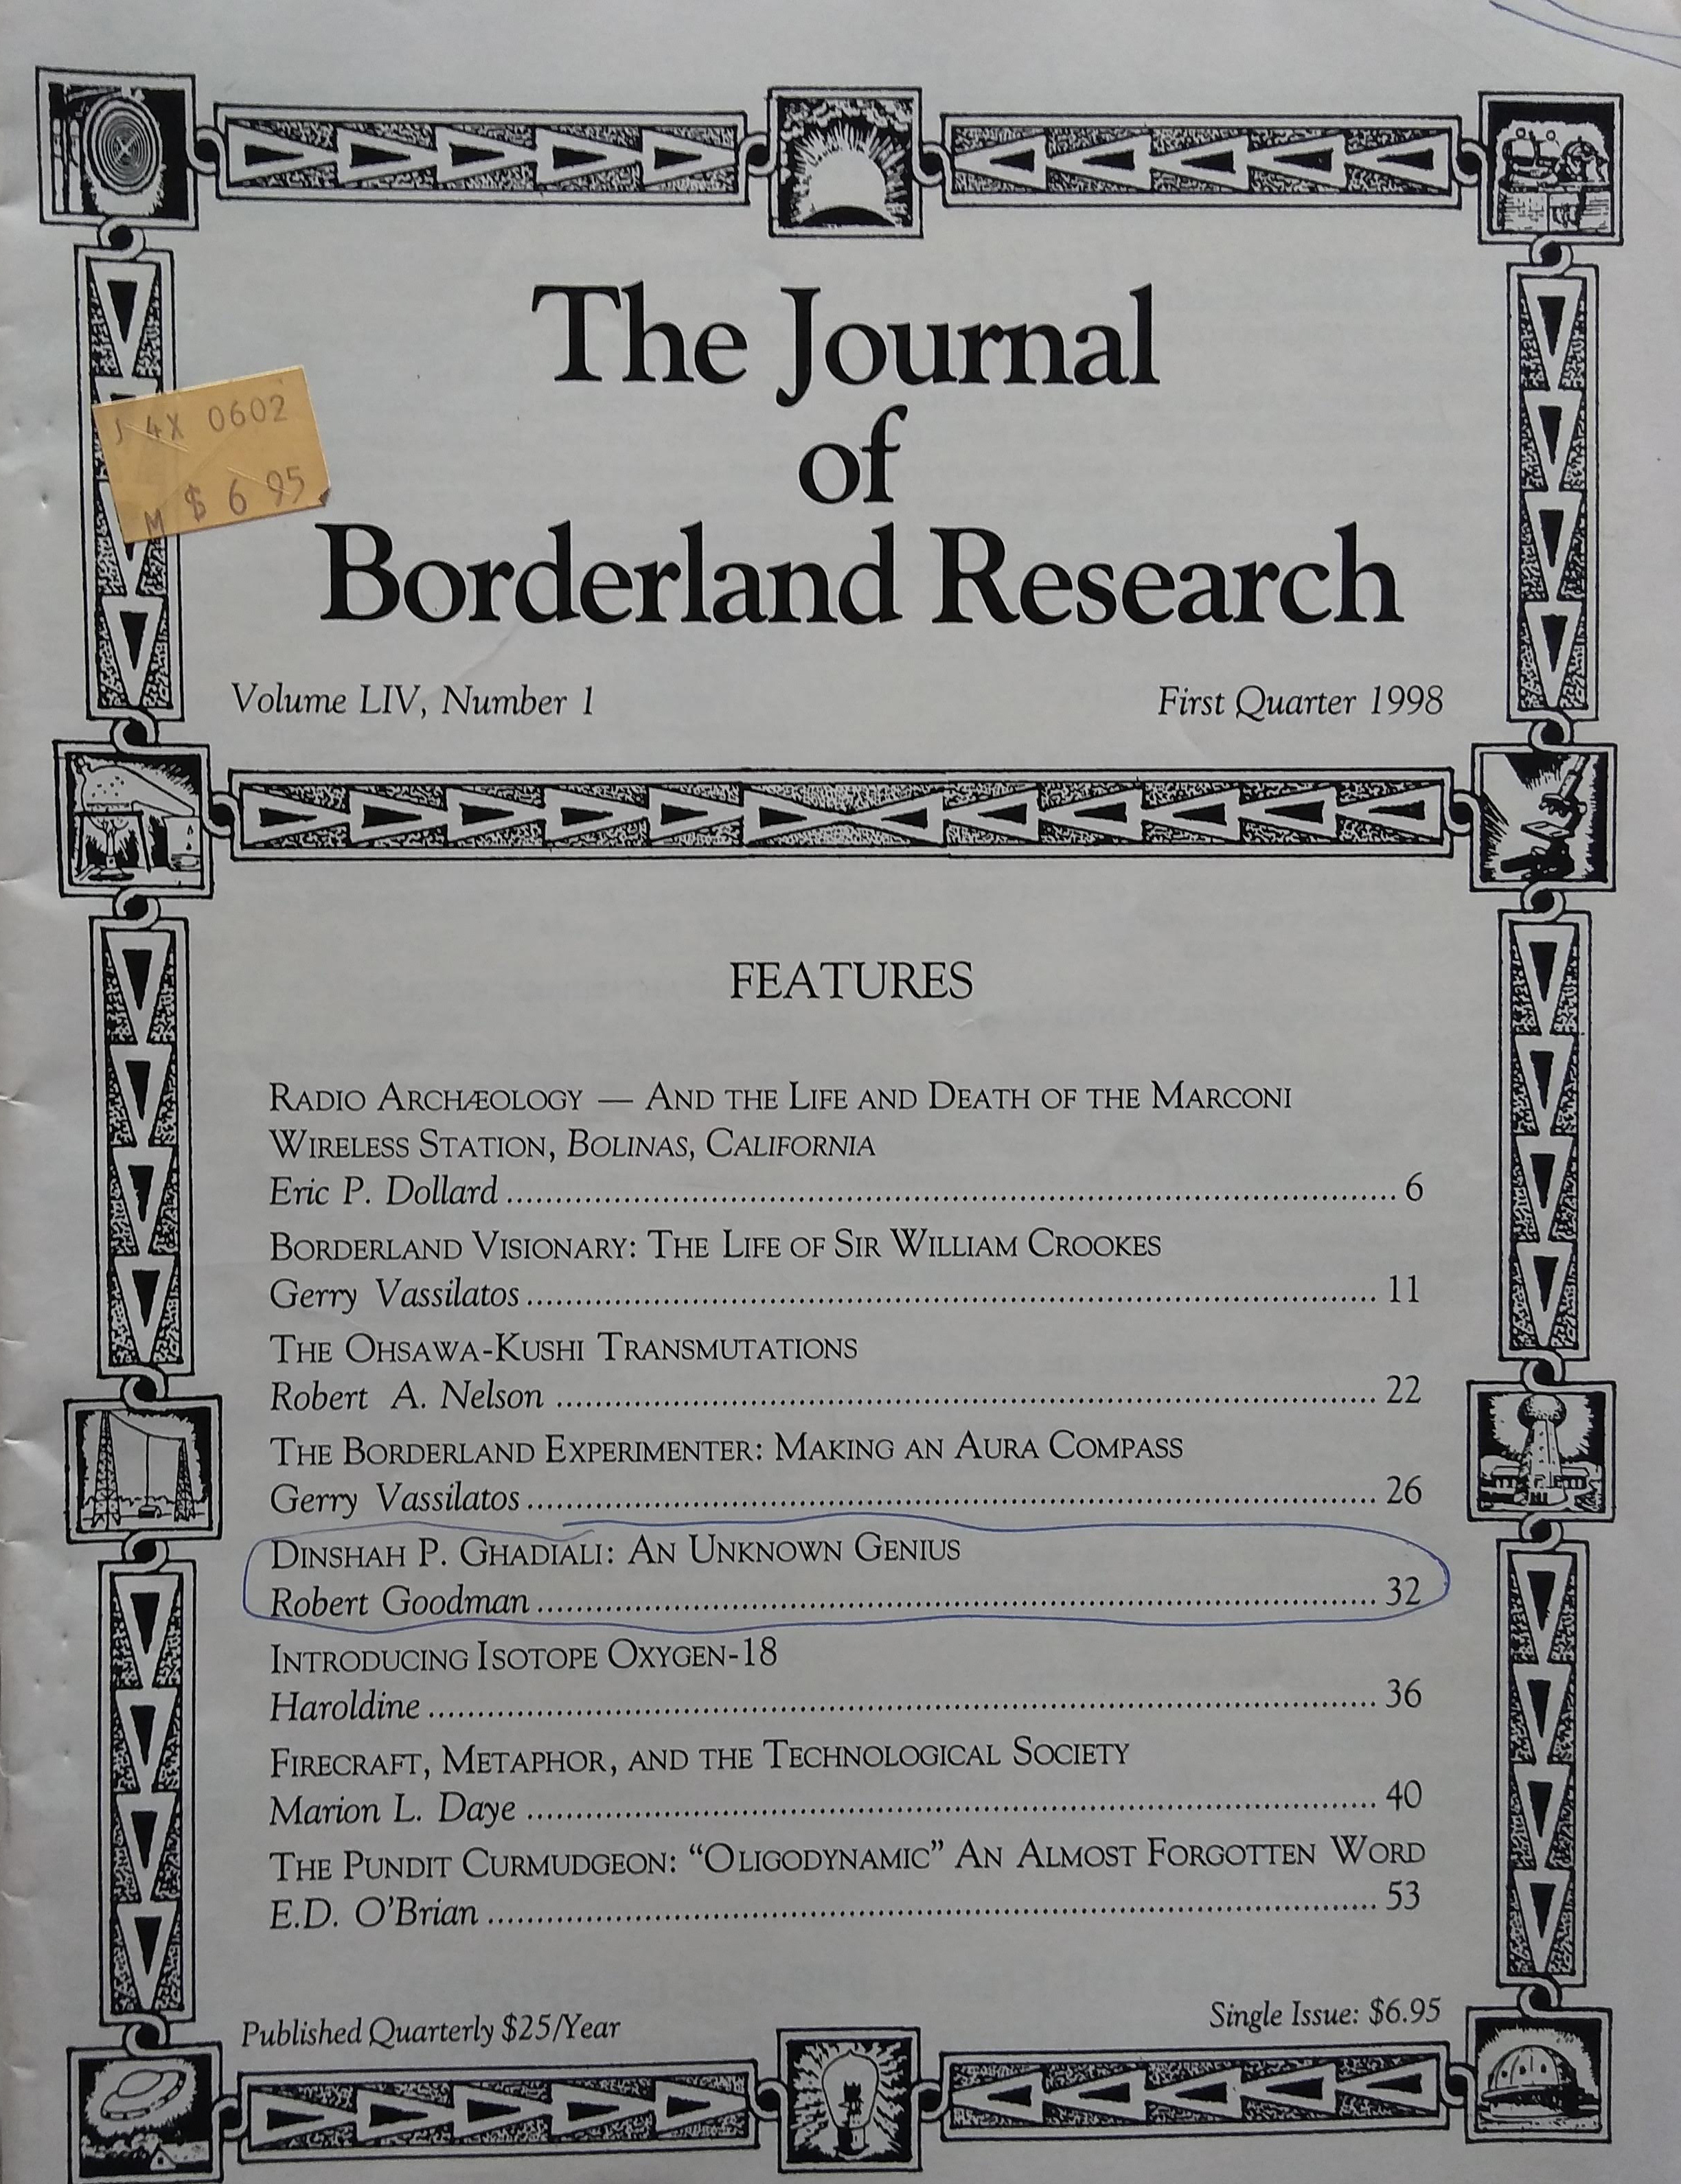 The Journal of Borderland Research